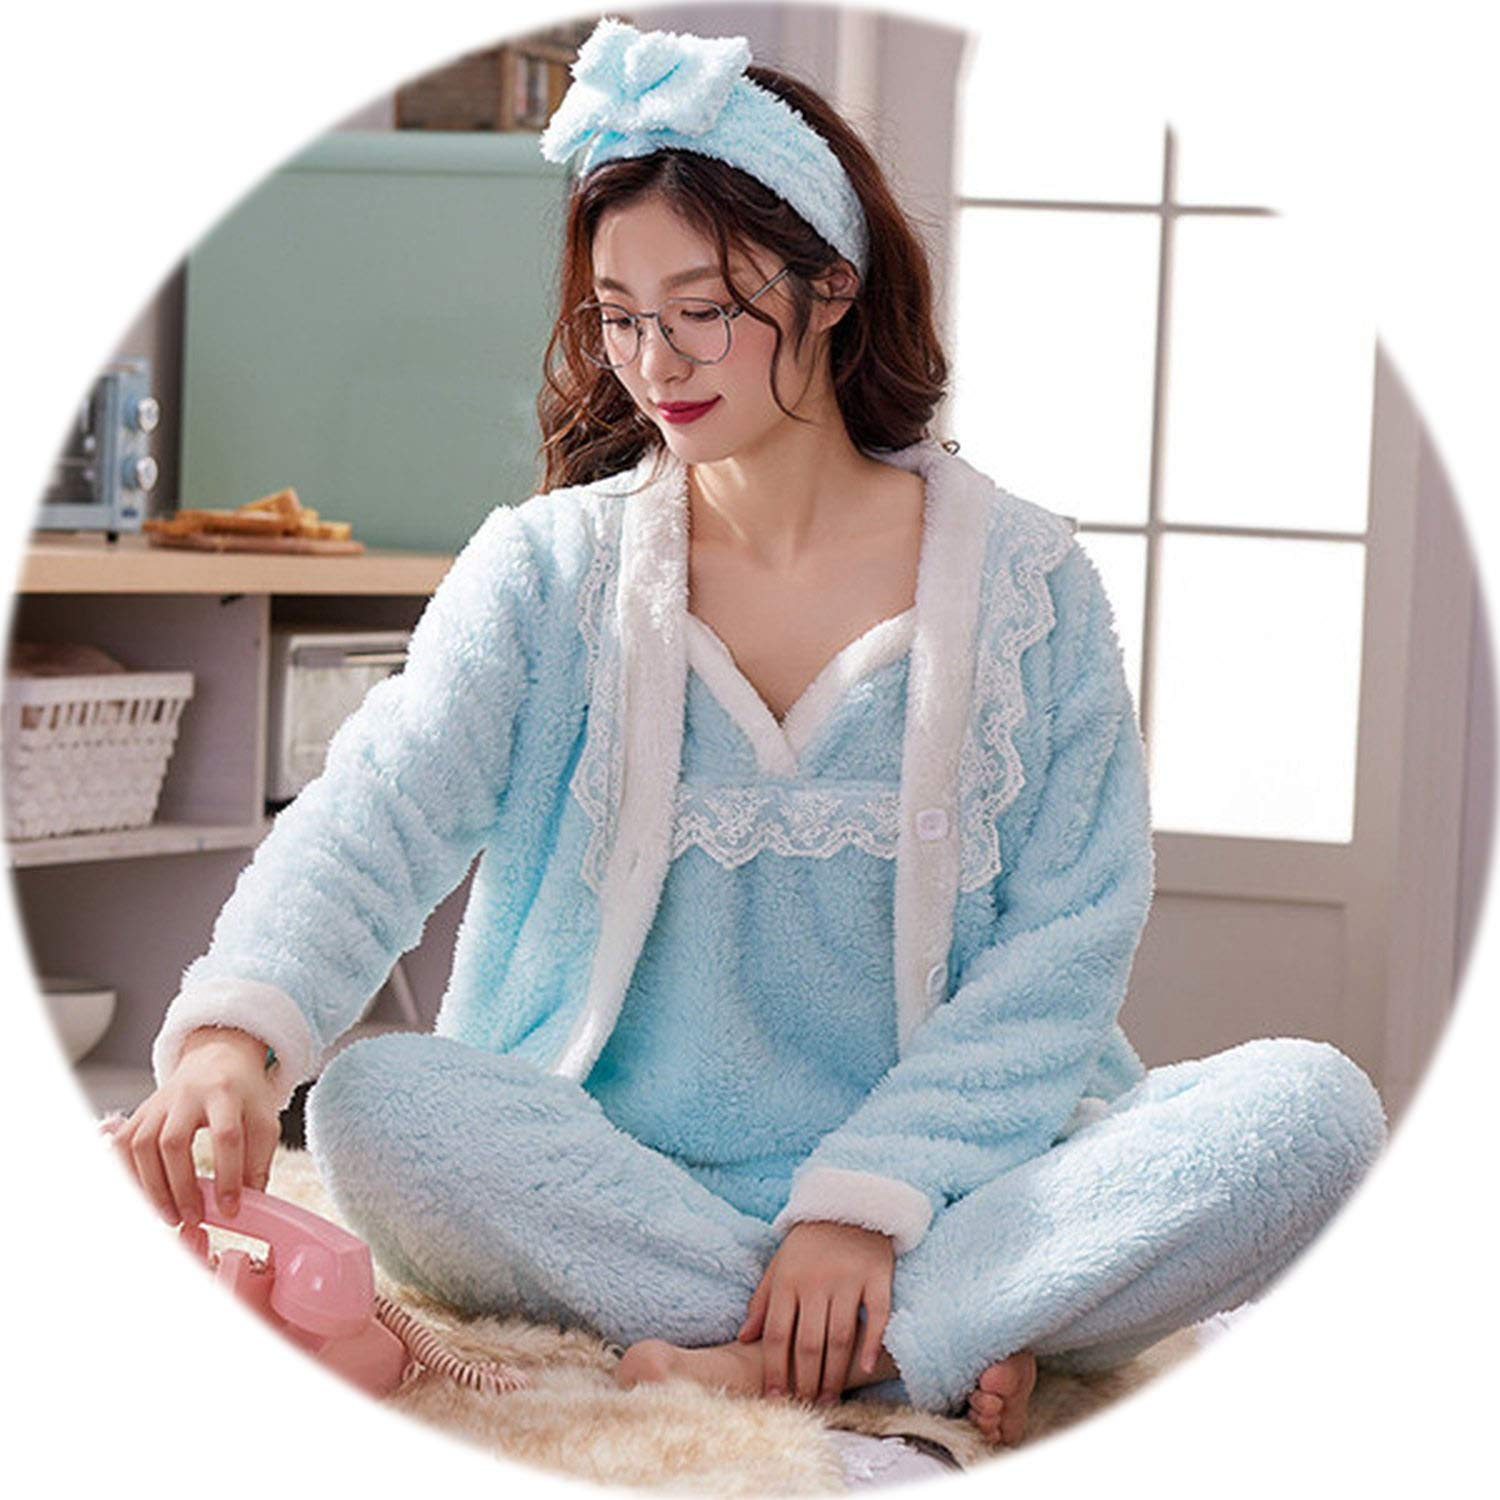 2 Be fearless Women Pajama Sets 4 Peices Flannel Pink Thick Warm Women Autumn Winter Pajamas Sleepwear